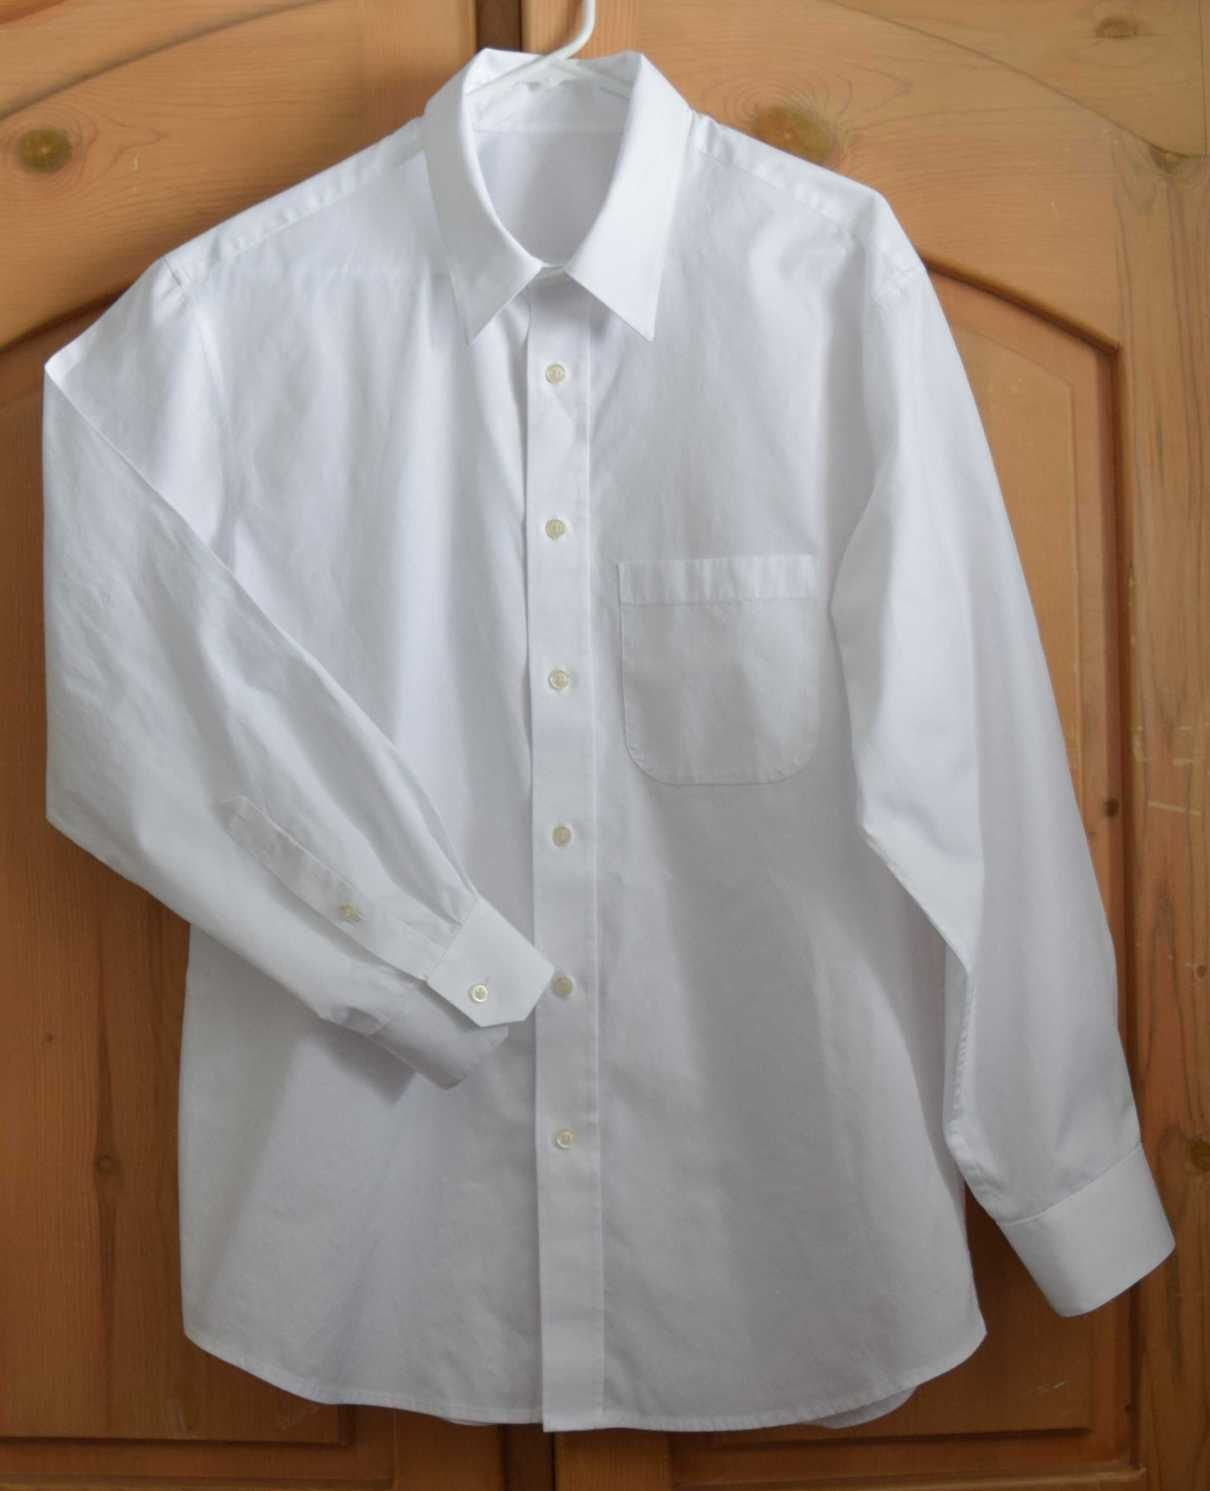 I finally finished my husband's white shirt that was supposed to have been a Christmas present. I procrastinated on working on this shirt for months, since I was terrified of staining that wh…